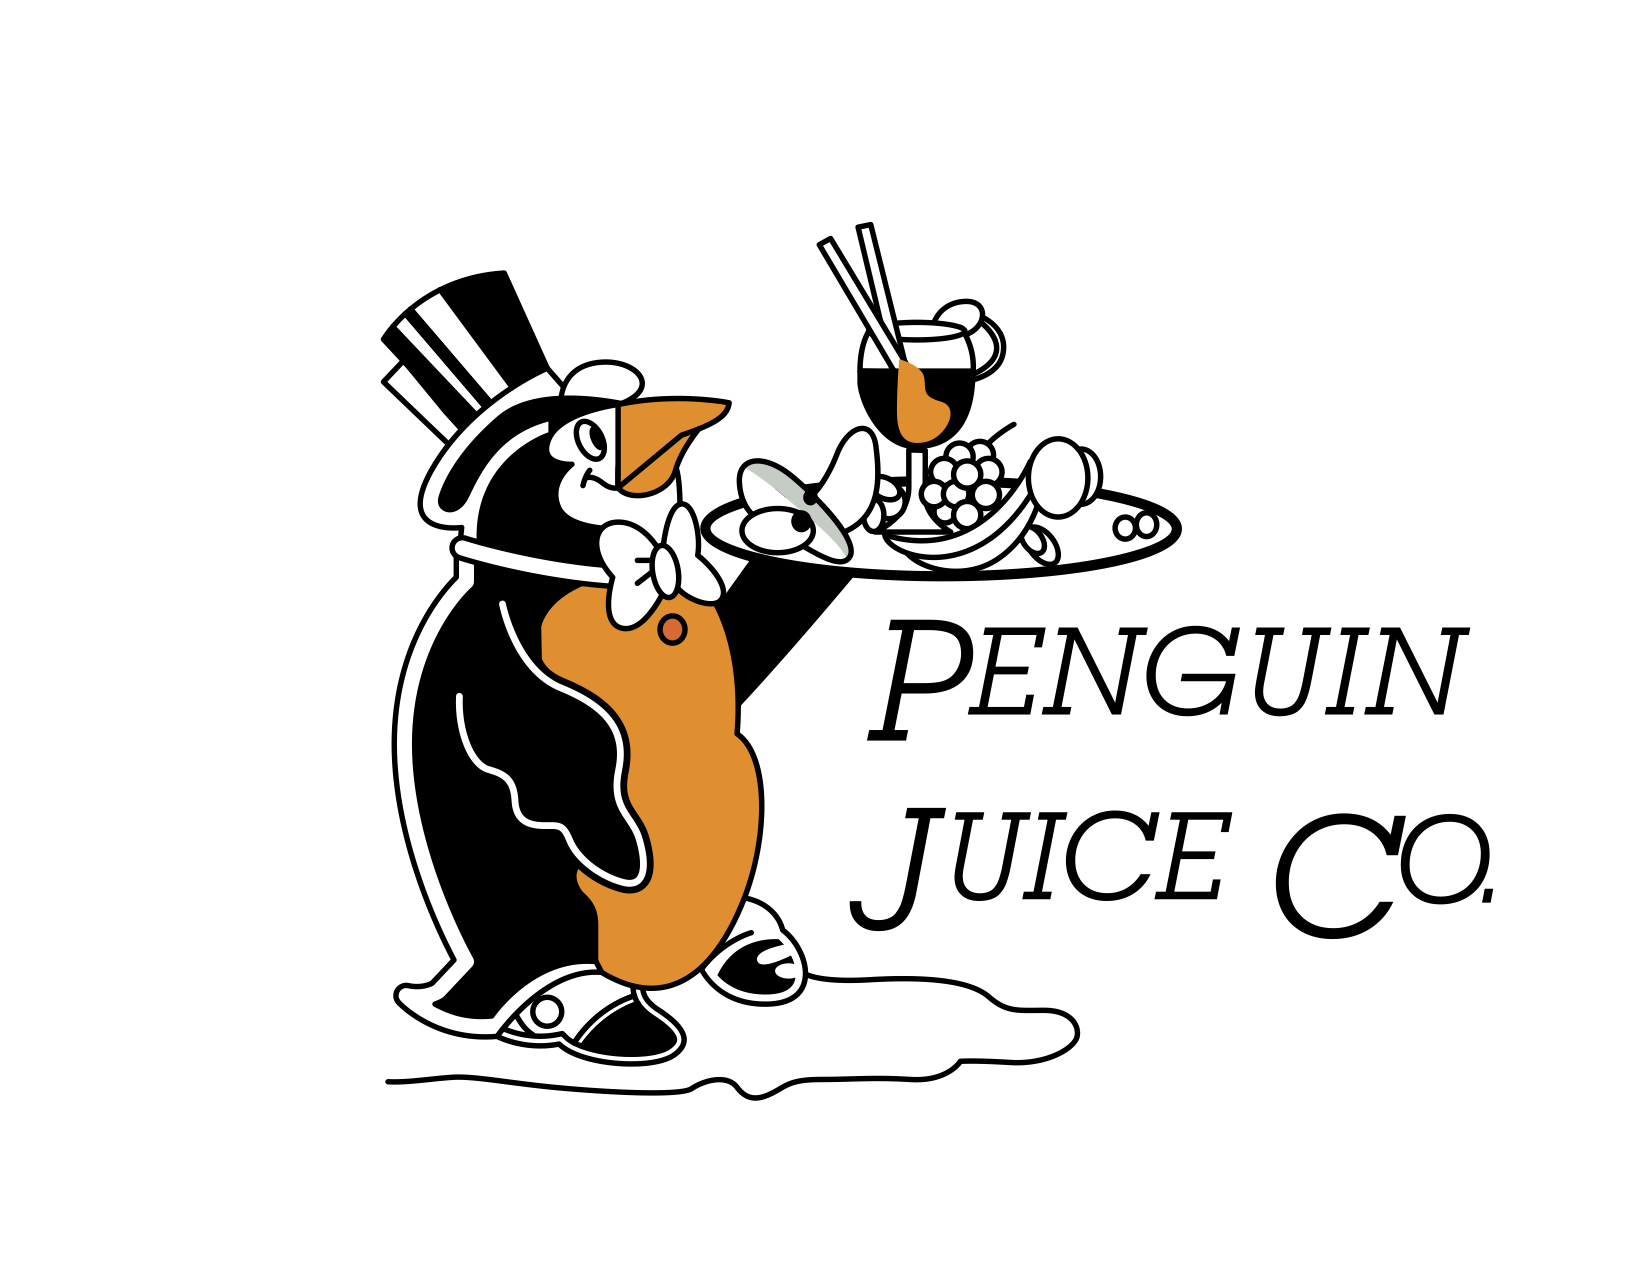 Penguin Juice Company